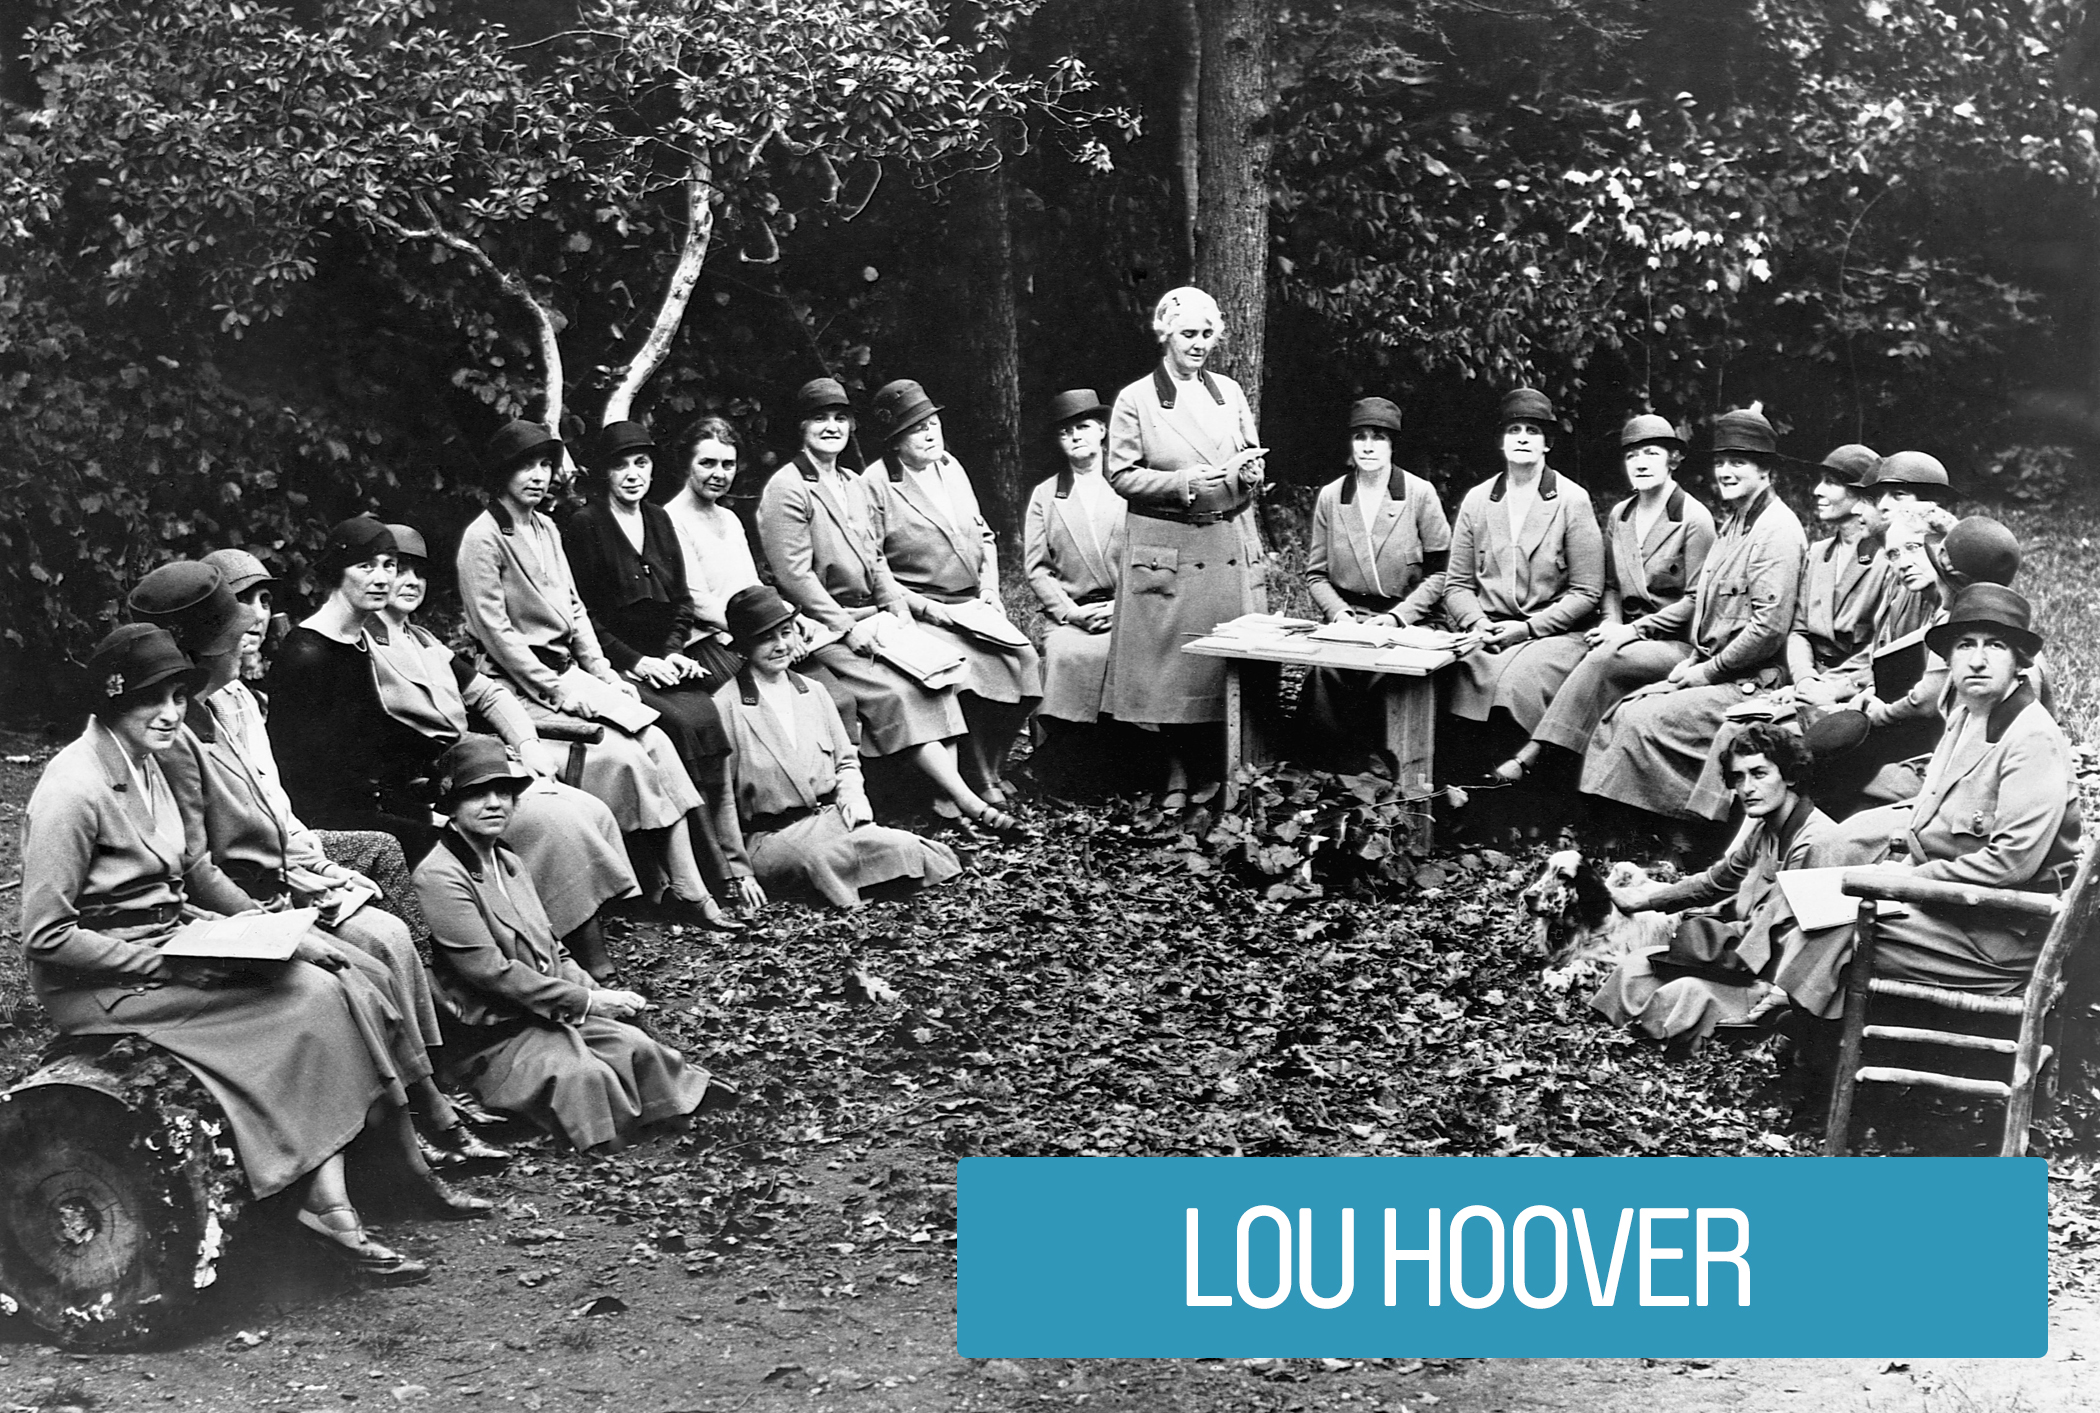 Lou Hoover was the first Honorary President of the Girl Scouts of America while she was First Lady. Moved by the organization's efforts to encourage exposure to nature, independence, self-reliance and its ability to mobilize young women in a time of crisis, she raised money for its expansion and trained its leaders (shown).